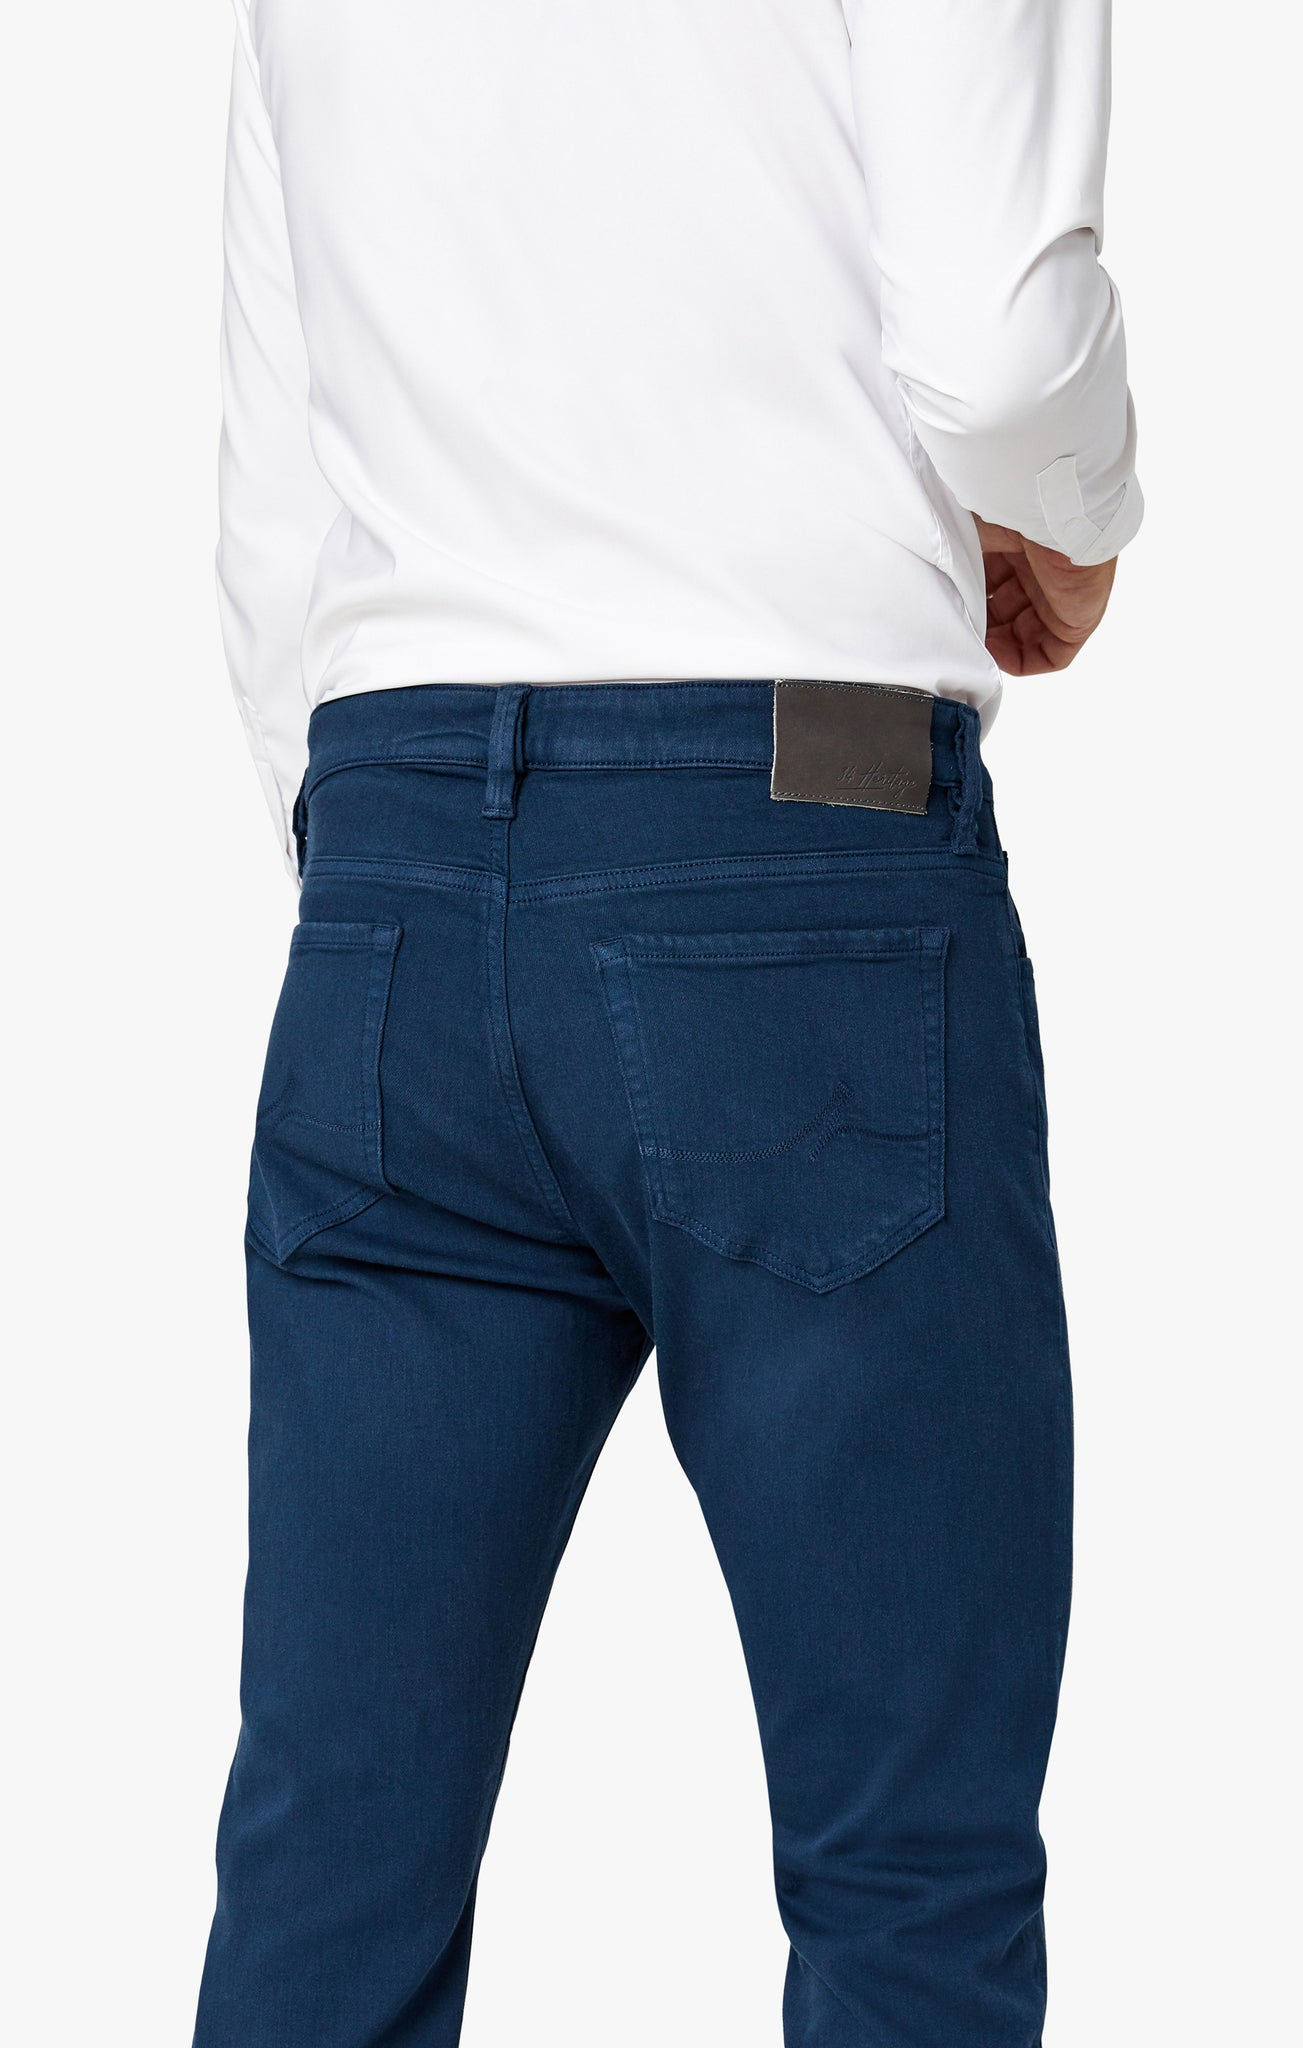 Charisma Classic Fit Pants in Petrol Comfort